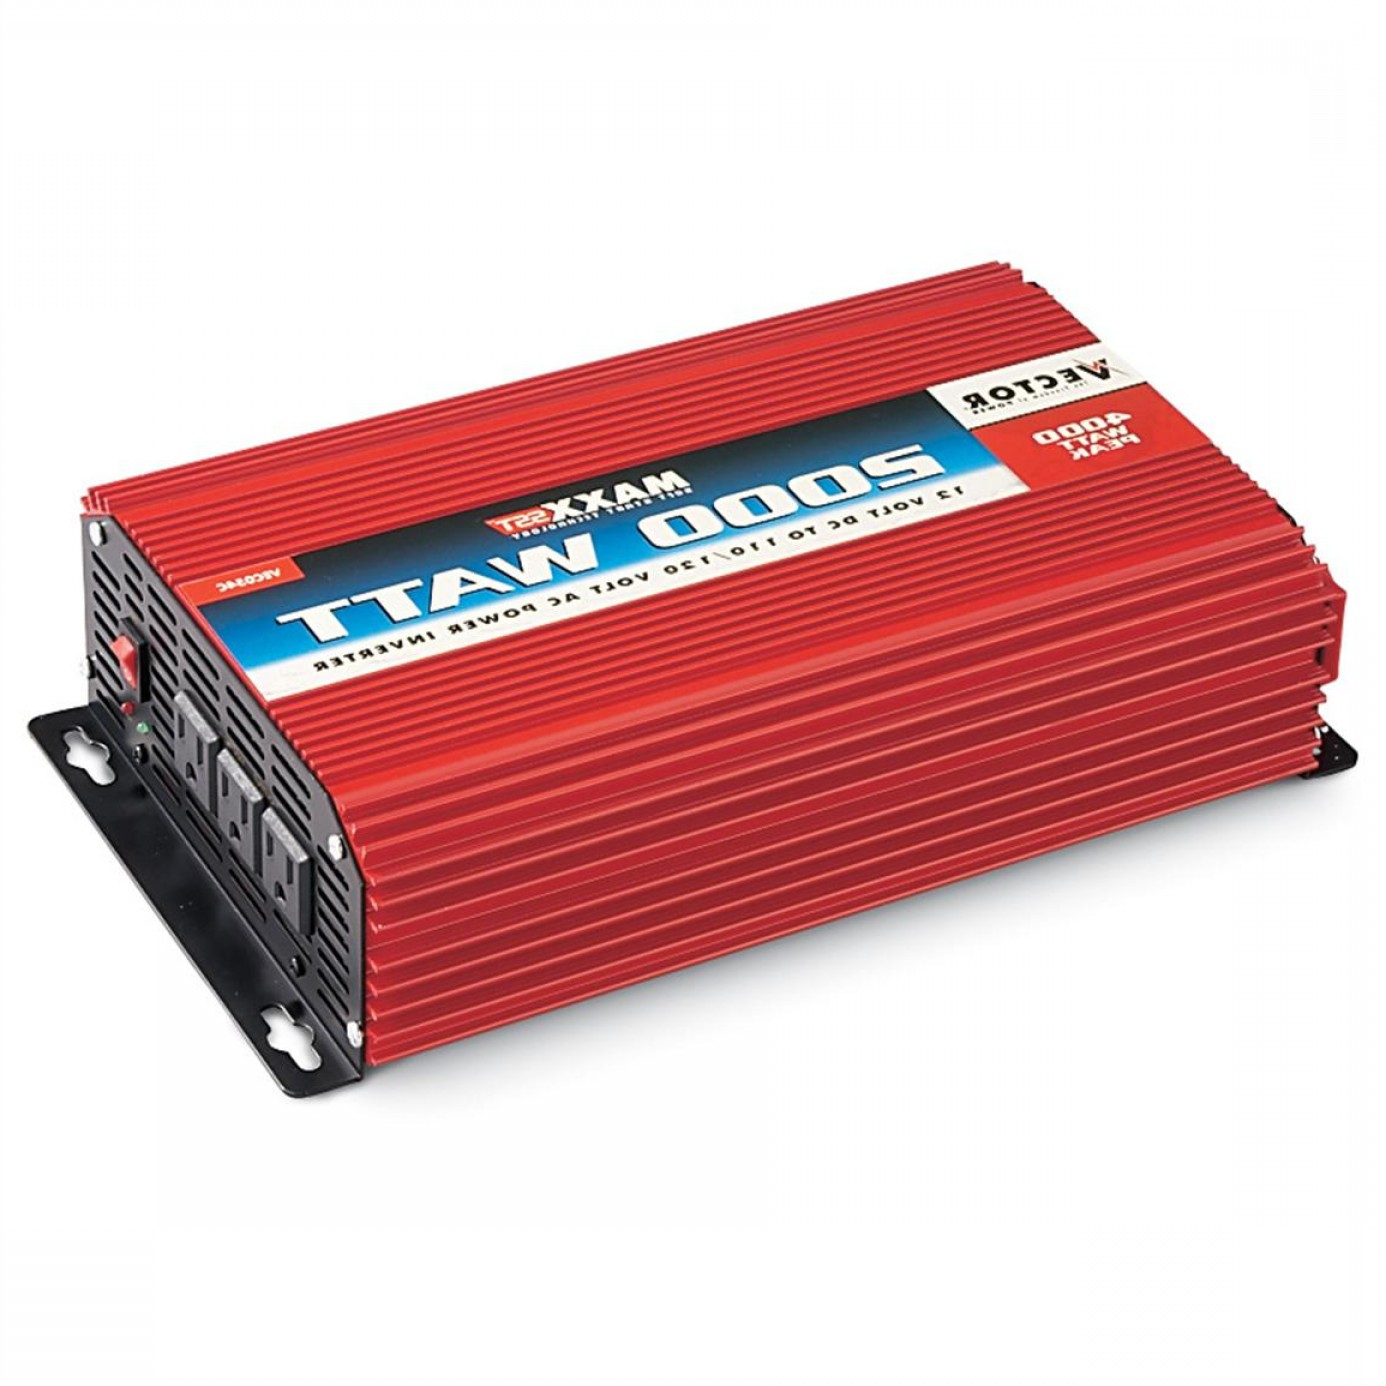 Vector Power Inverter Remote: Vector Maxx Sst Watt Power Inverter